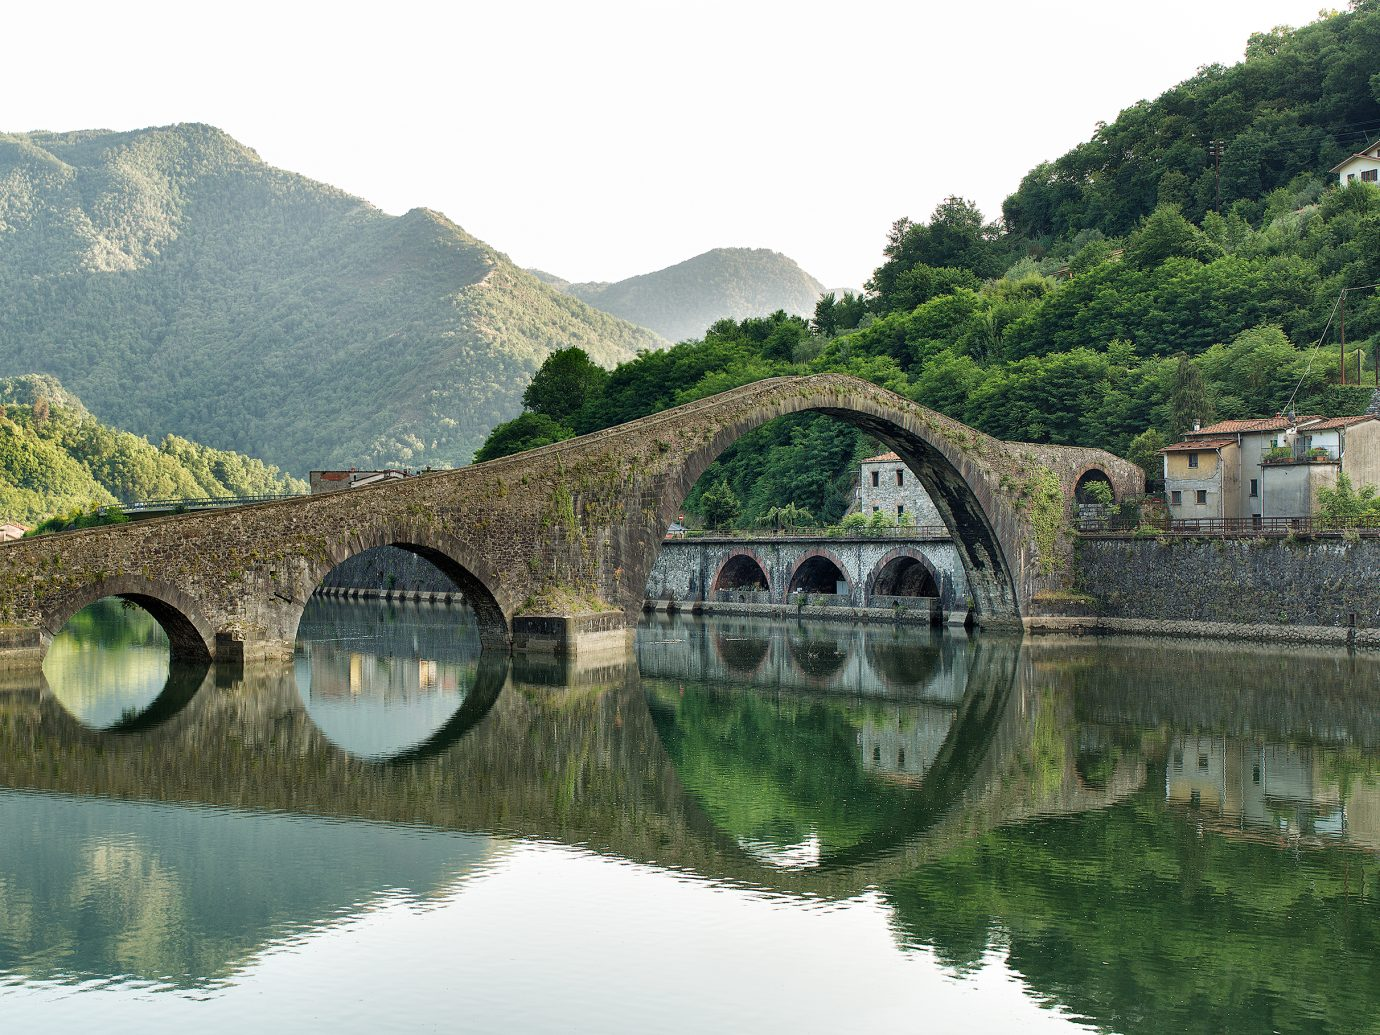 Devils Bridge-Ponte della Maddalena is a bridge crossing the Serchio river near the town of Borgo a Mozzano in the Italian province of Lucca